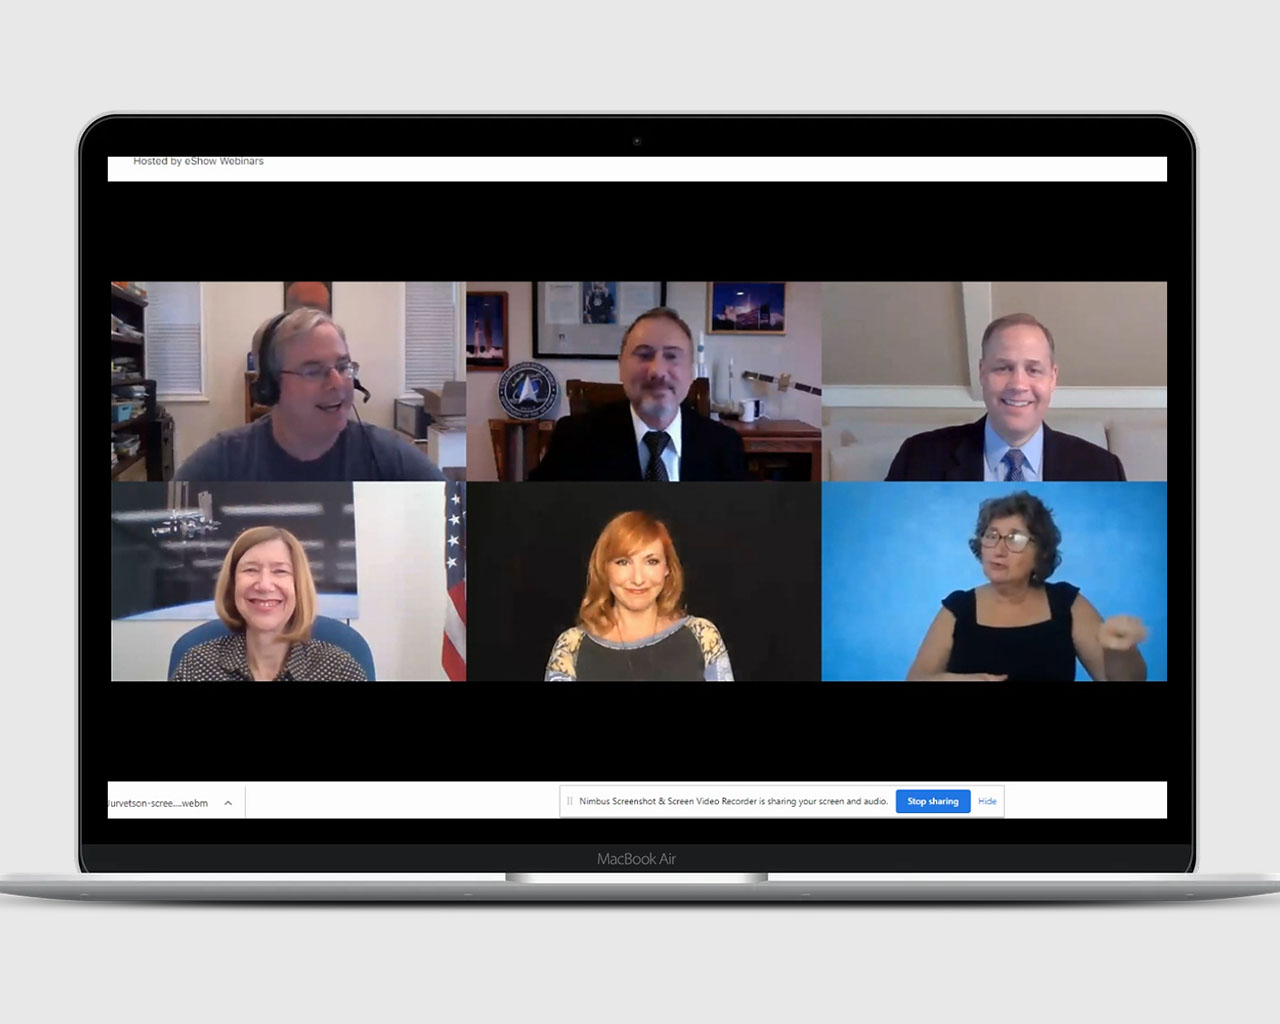 Laptop screen showing a session from the virtual event ASCEND